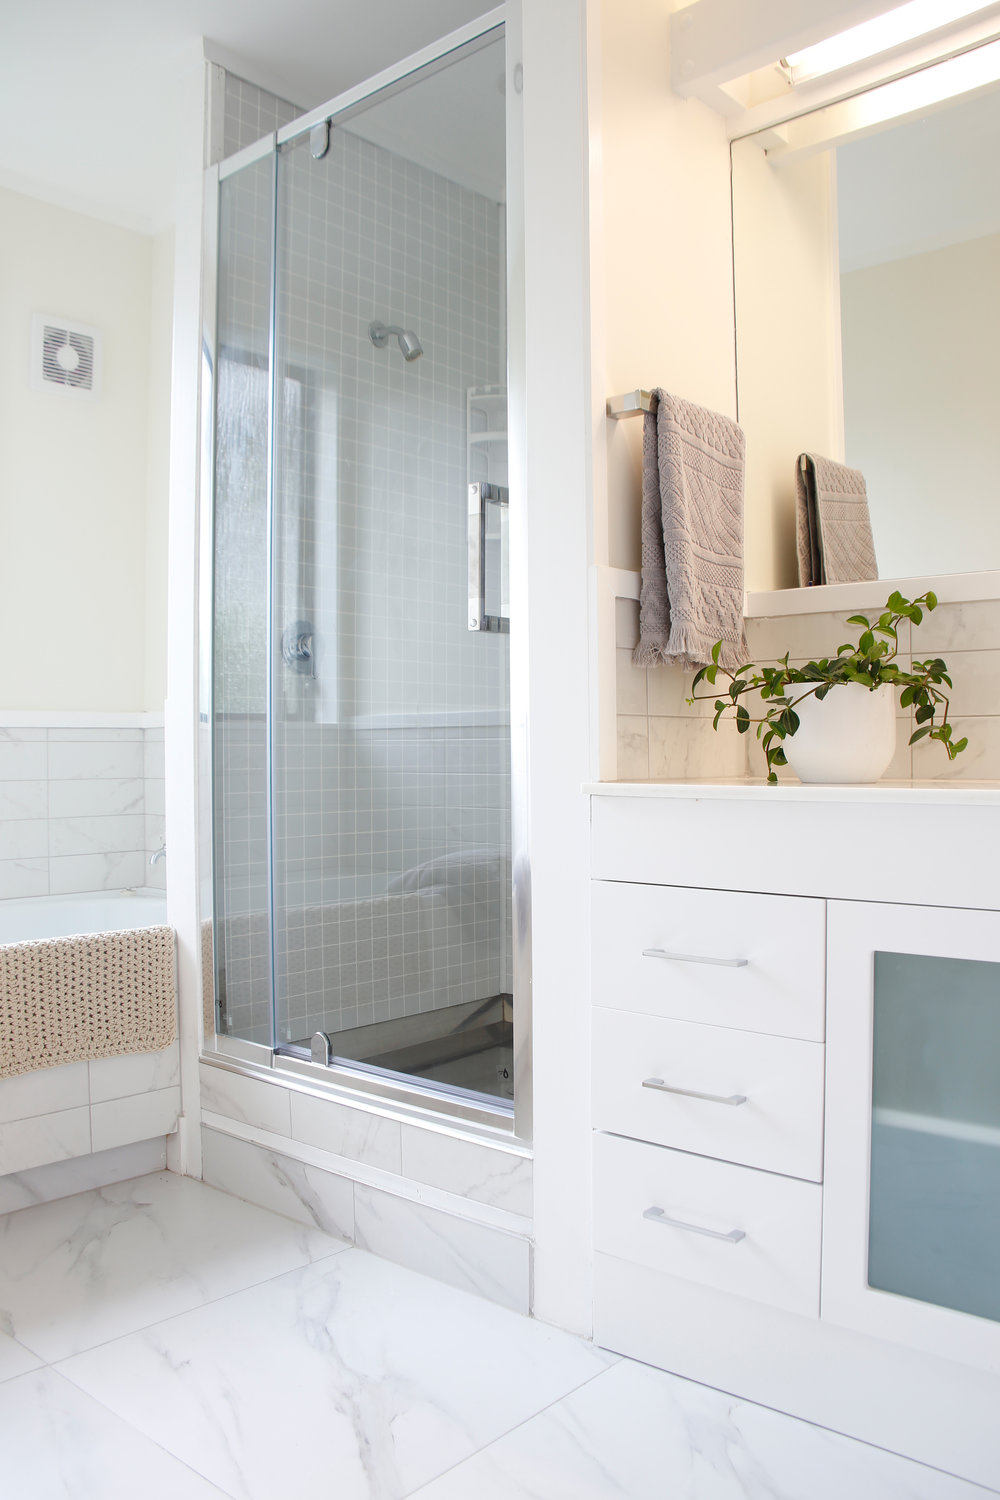 What would it be like to live with a newly-renovated bathroom ? I imagine I would enjoy the clean lines and simplicity. Underfloor heating would be nice in winter. But would the walls remain blank for fear of making a hole in fresh paint work ?